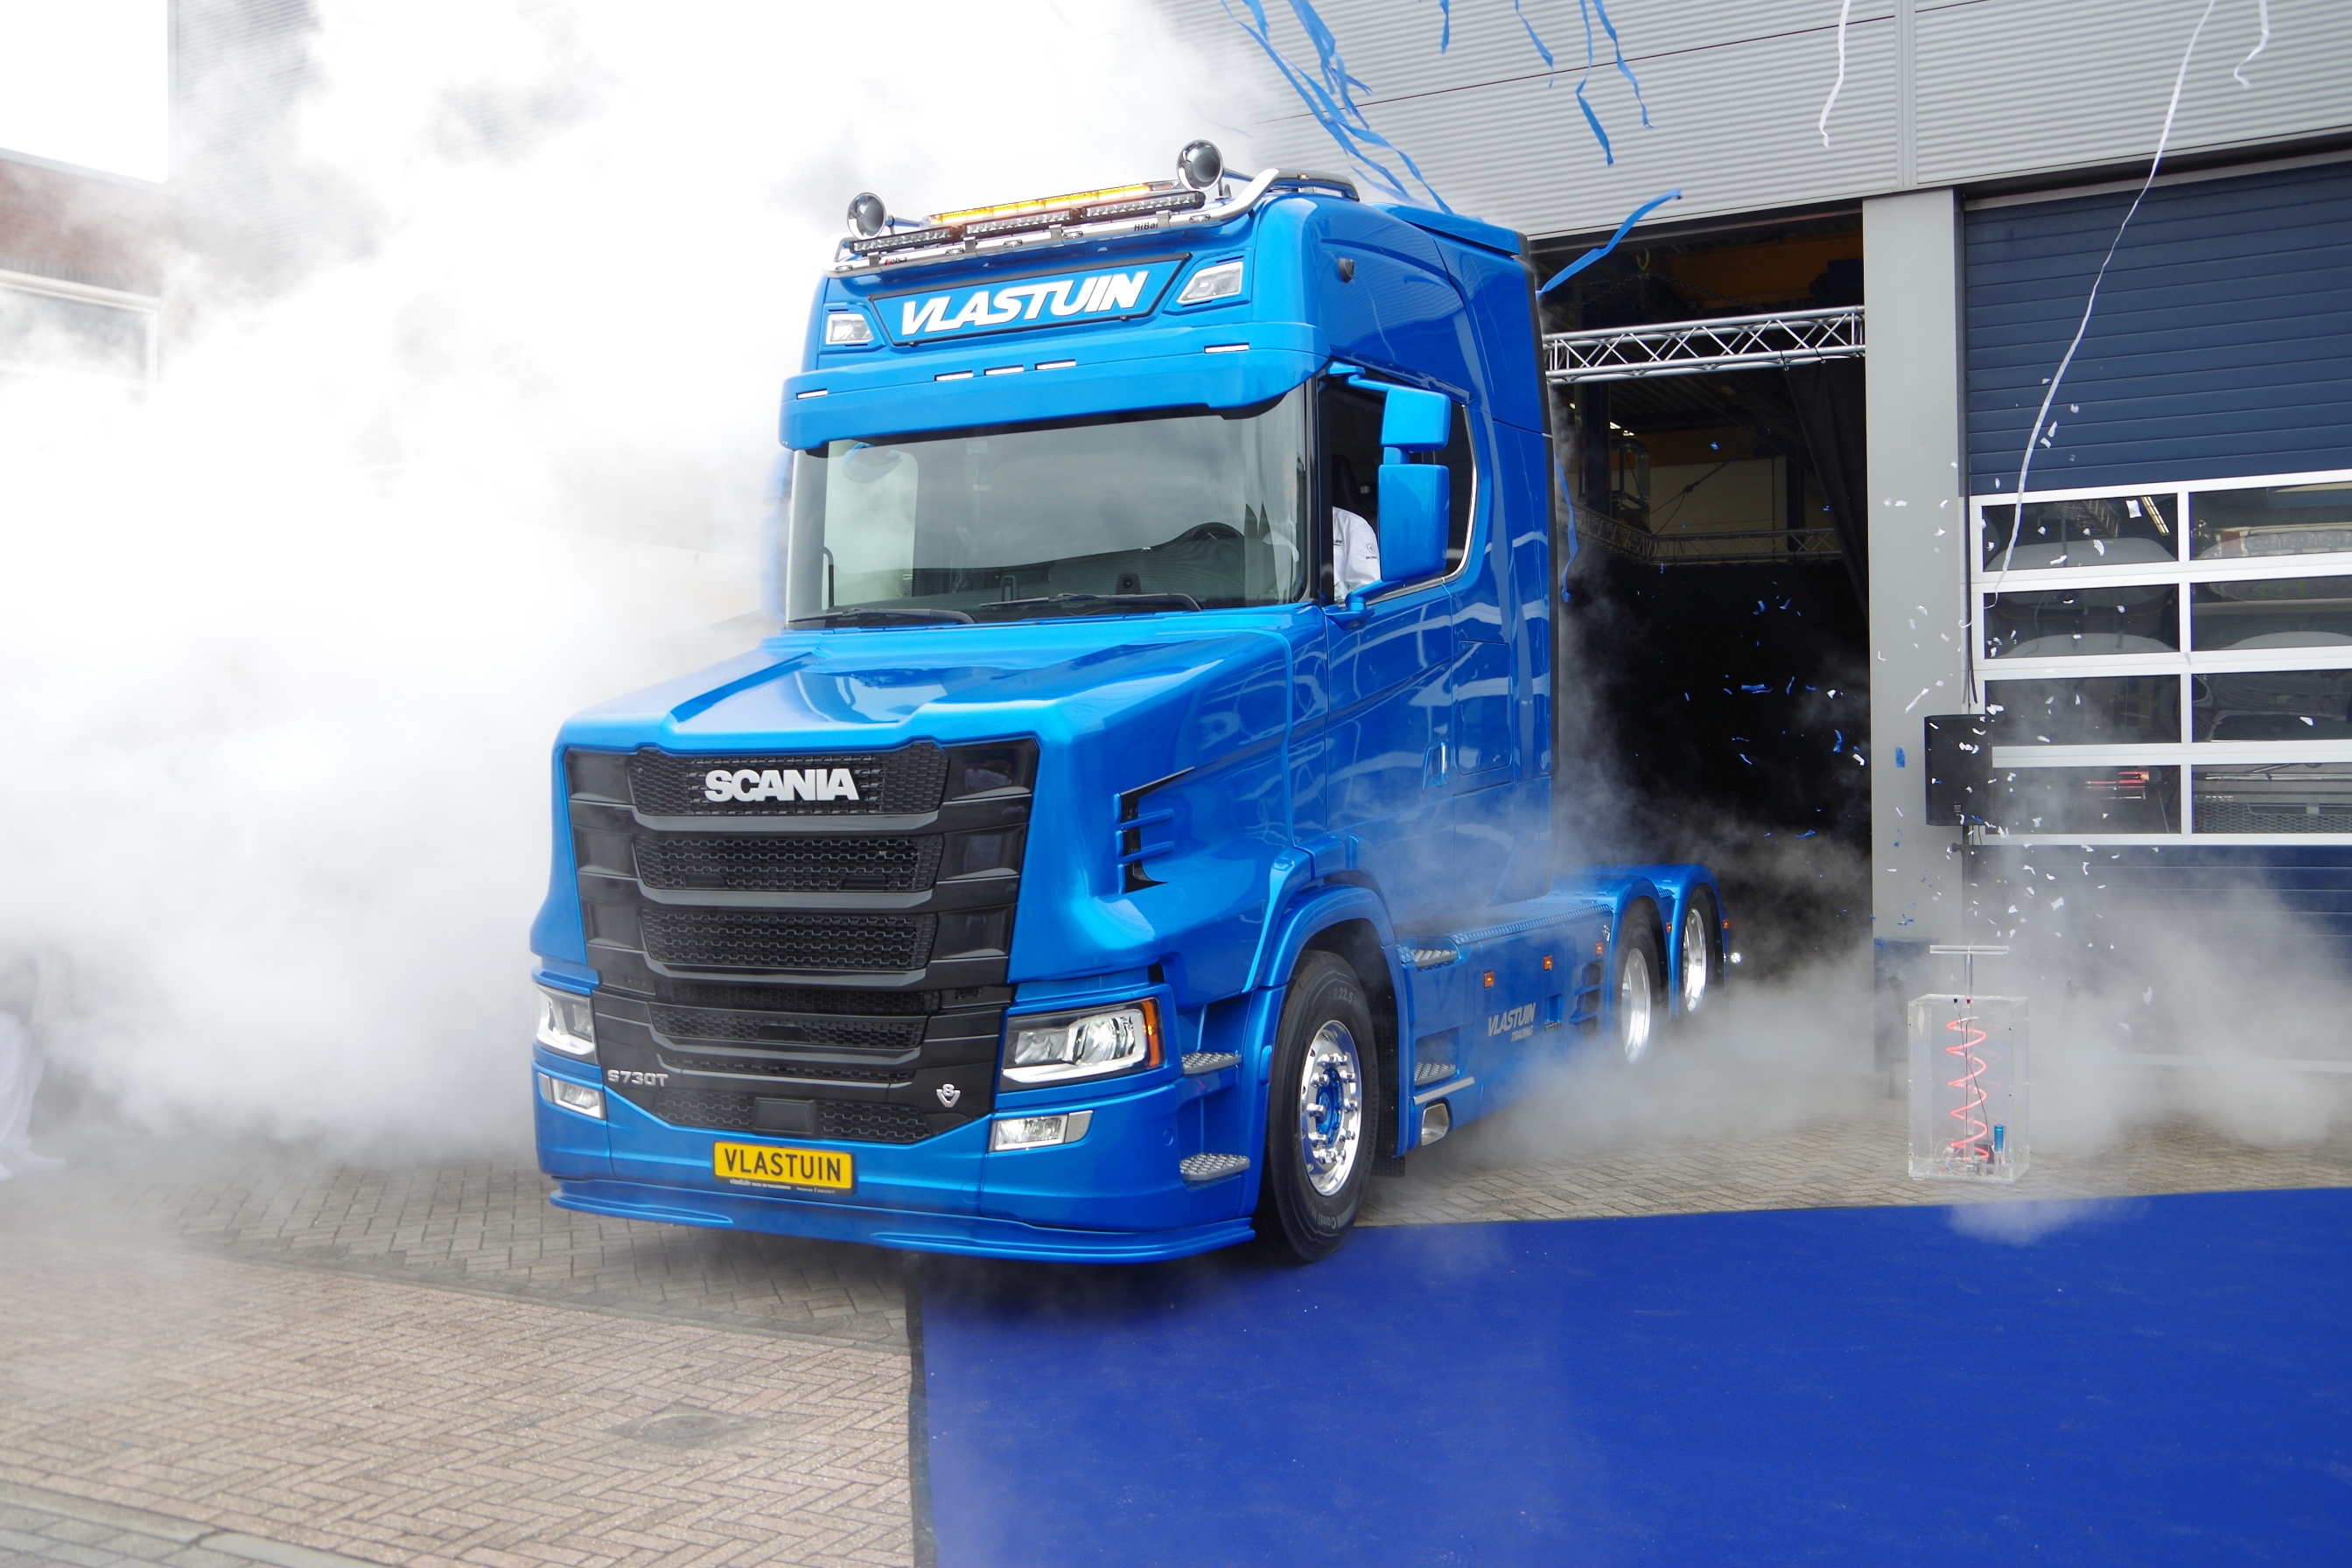 Scania S730t By Vlastuin Truck Conversions Bigtruck Magazine